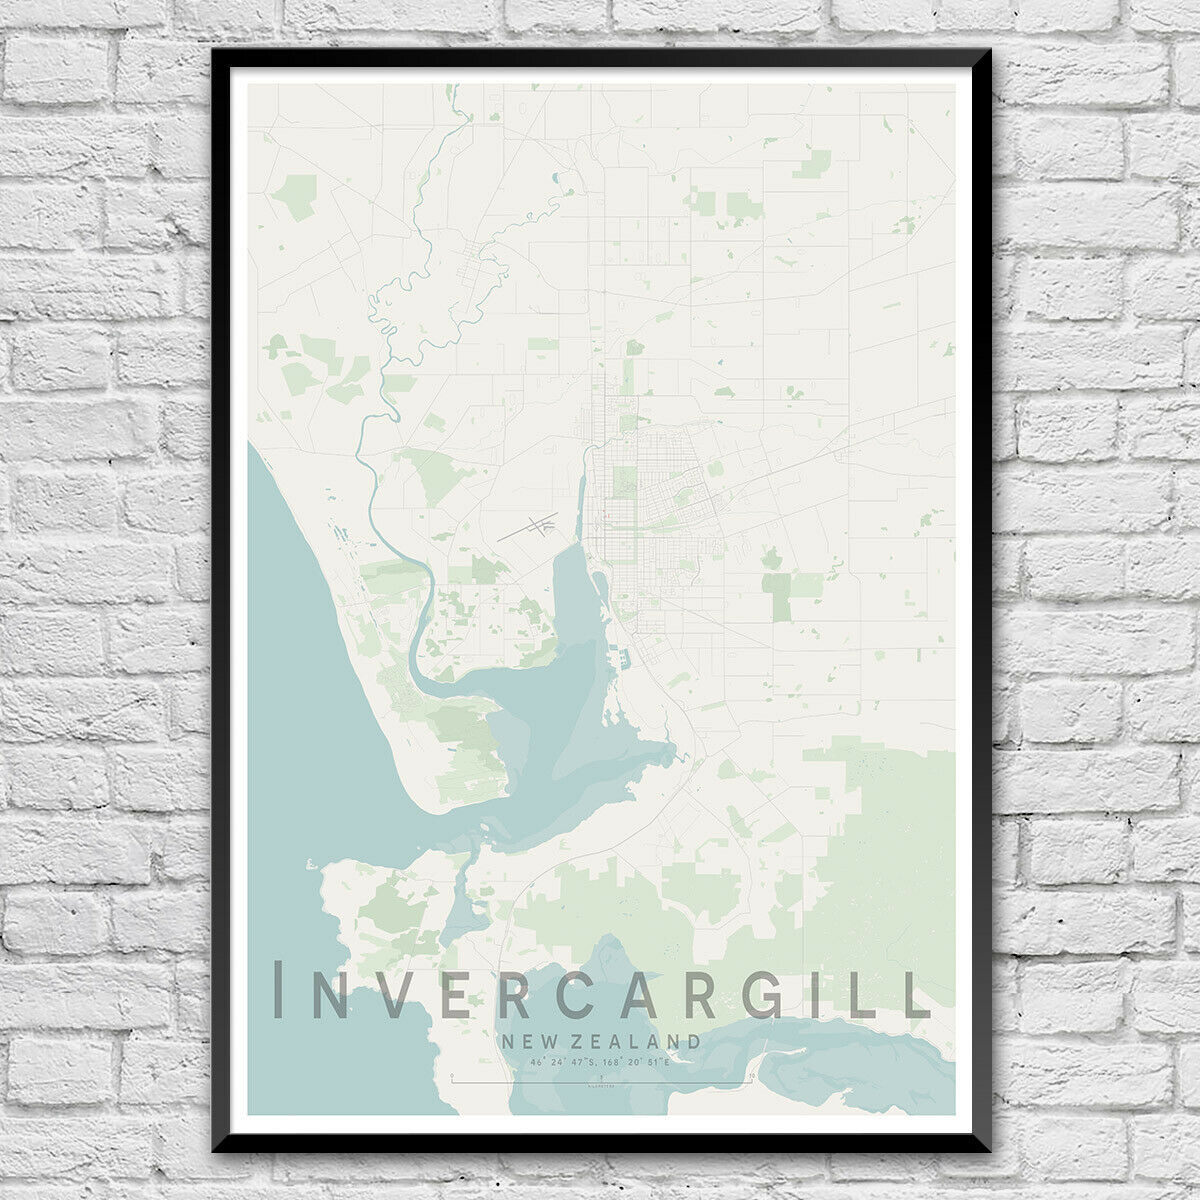 INVERCARGILL Map Print, New New New Zealand Wall Art Poster City Map Wall Decor A3 A2 A1 226856